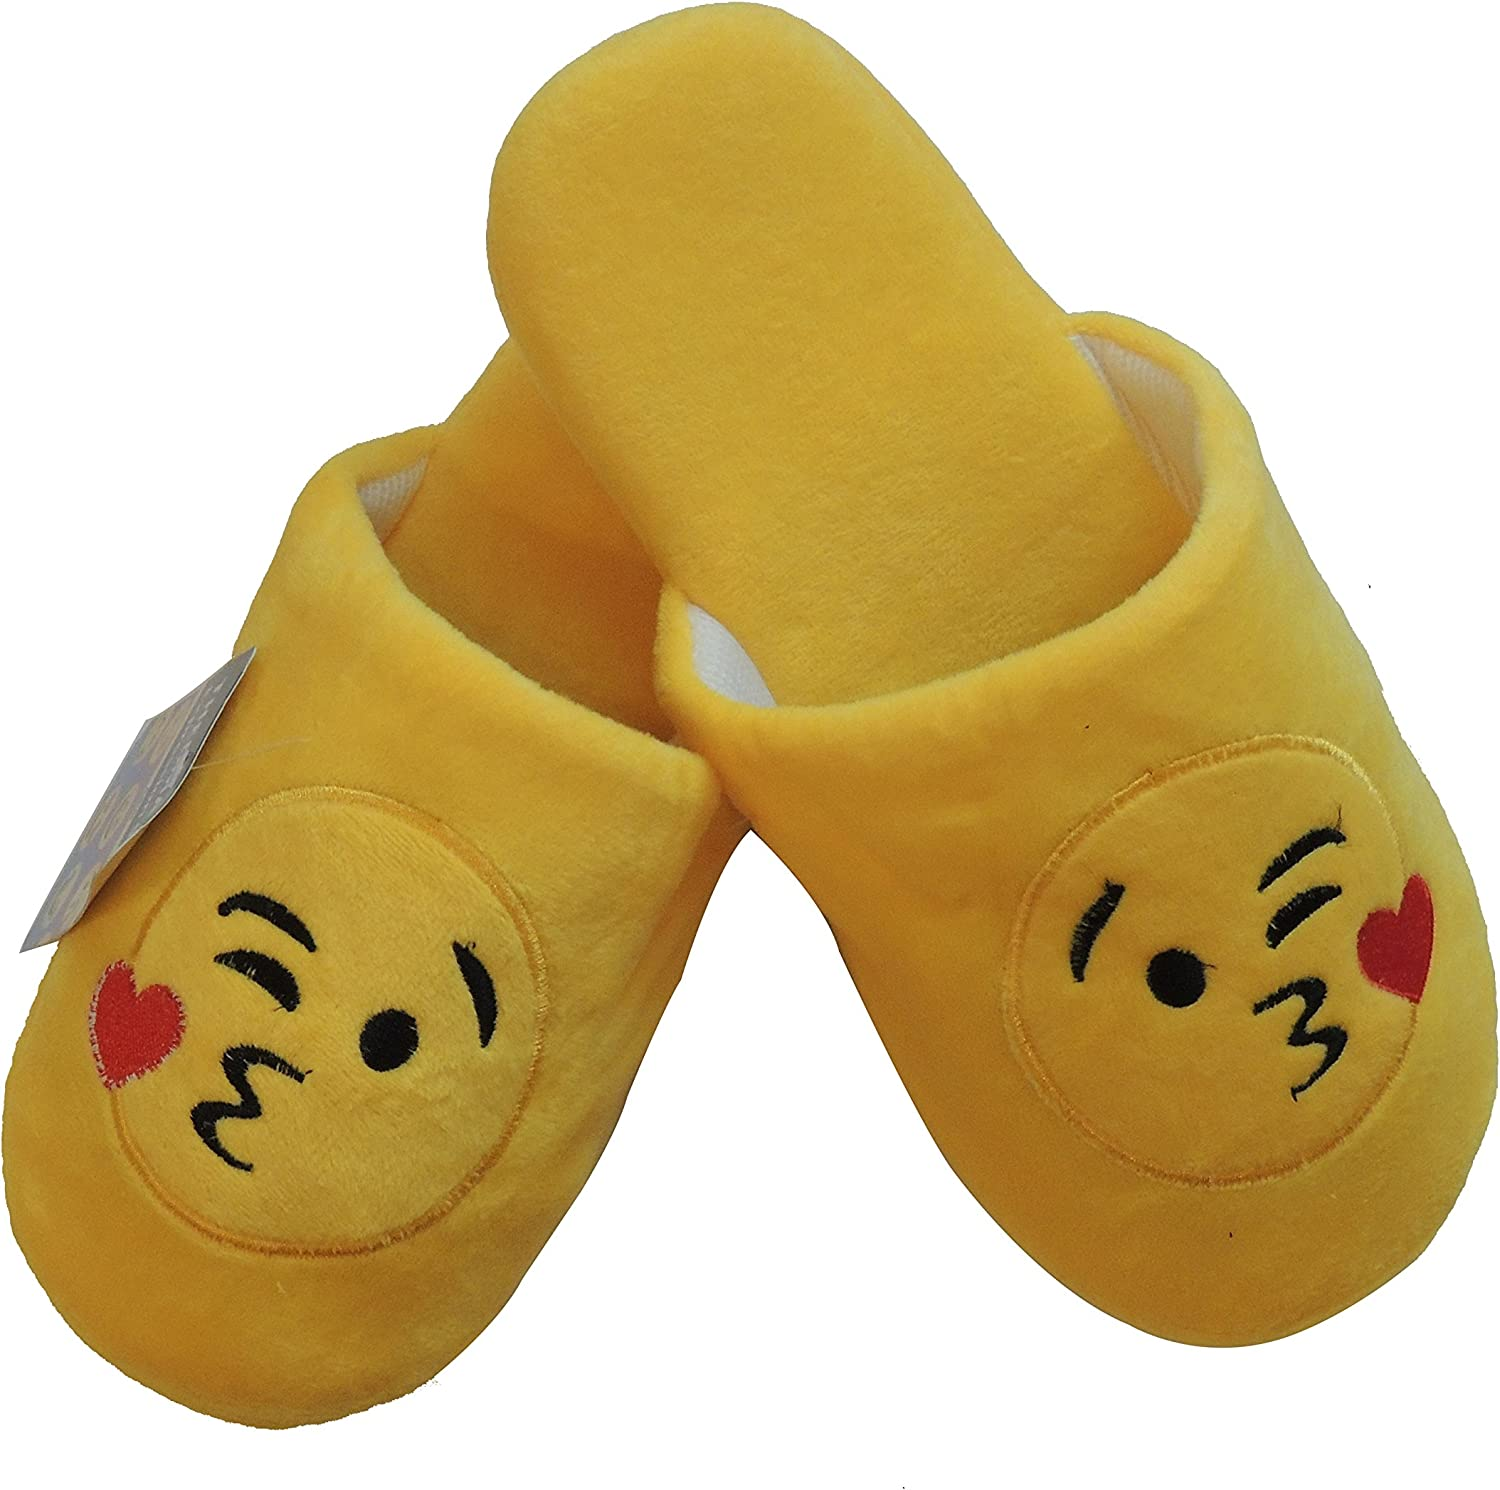 ThermaX Emoji Slippers - Plush, Warm, Non-Skid, Unisex, Bonus Emoji Pen Great Gift